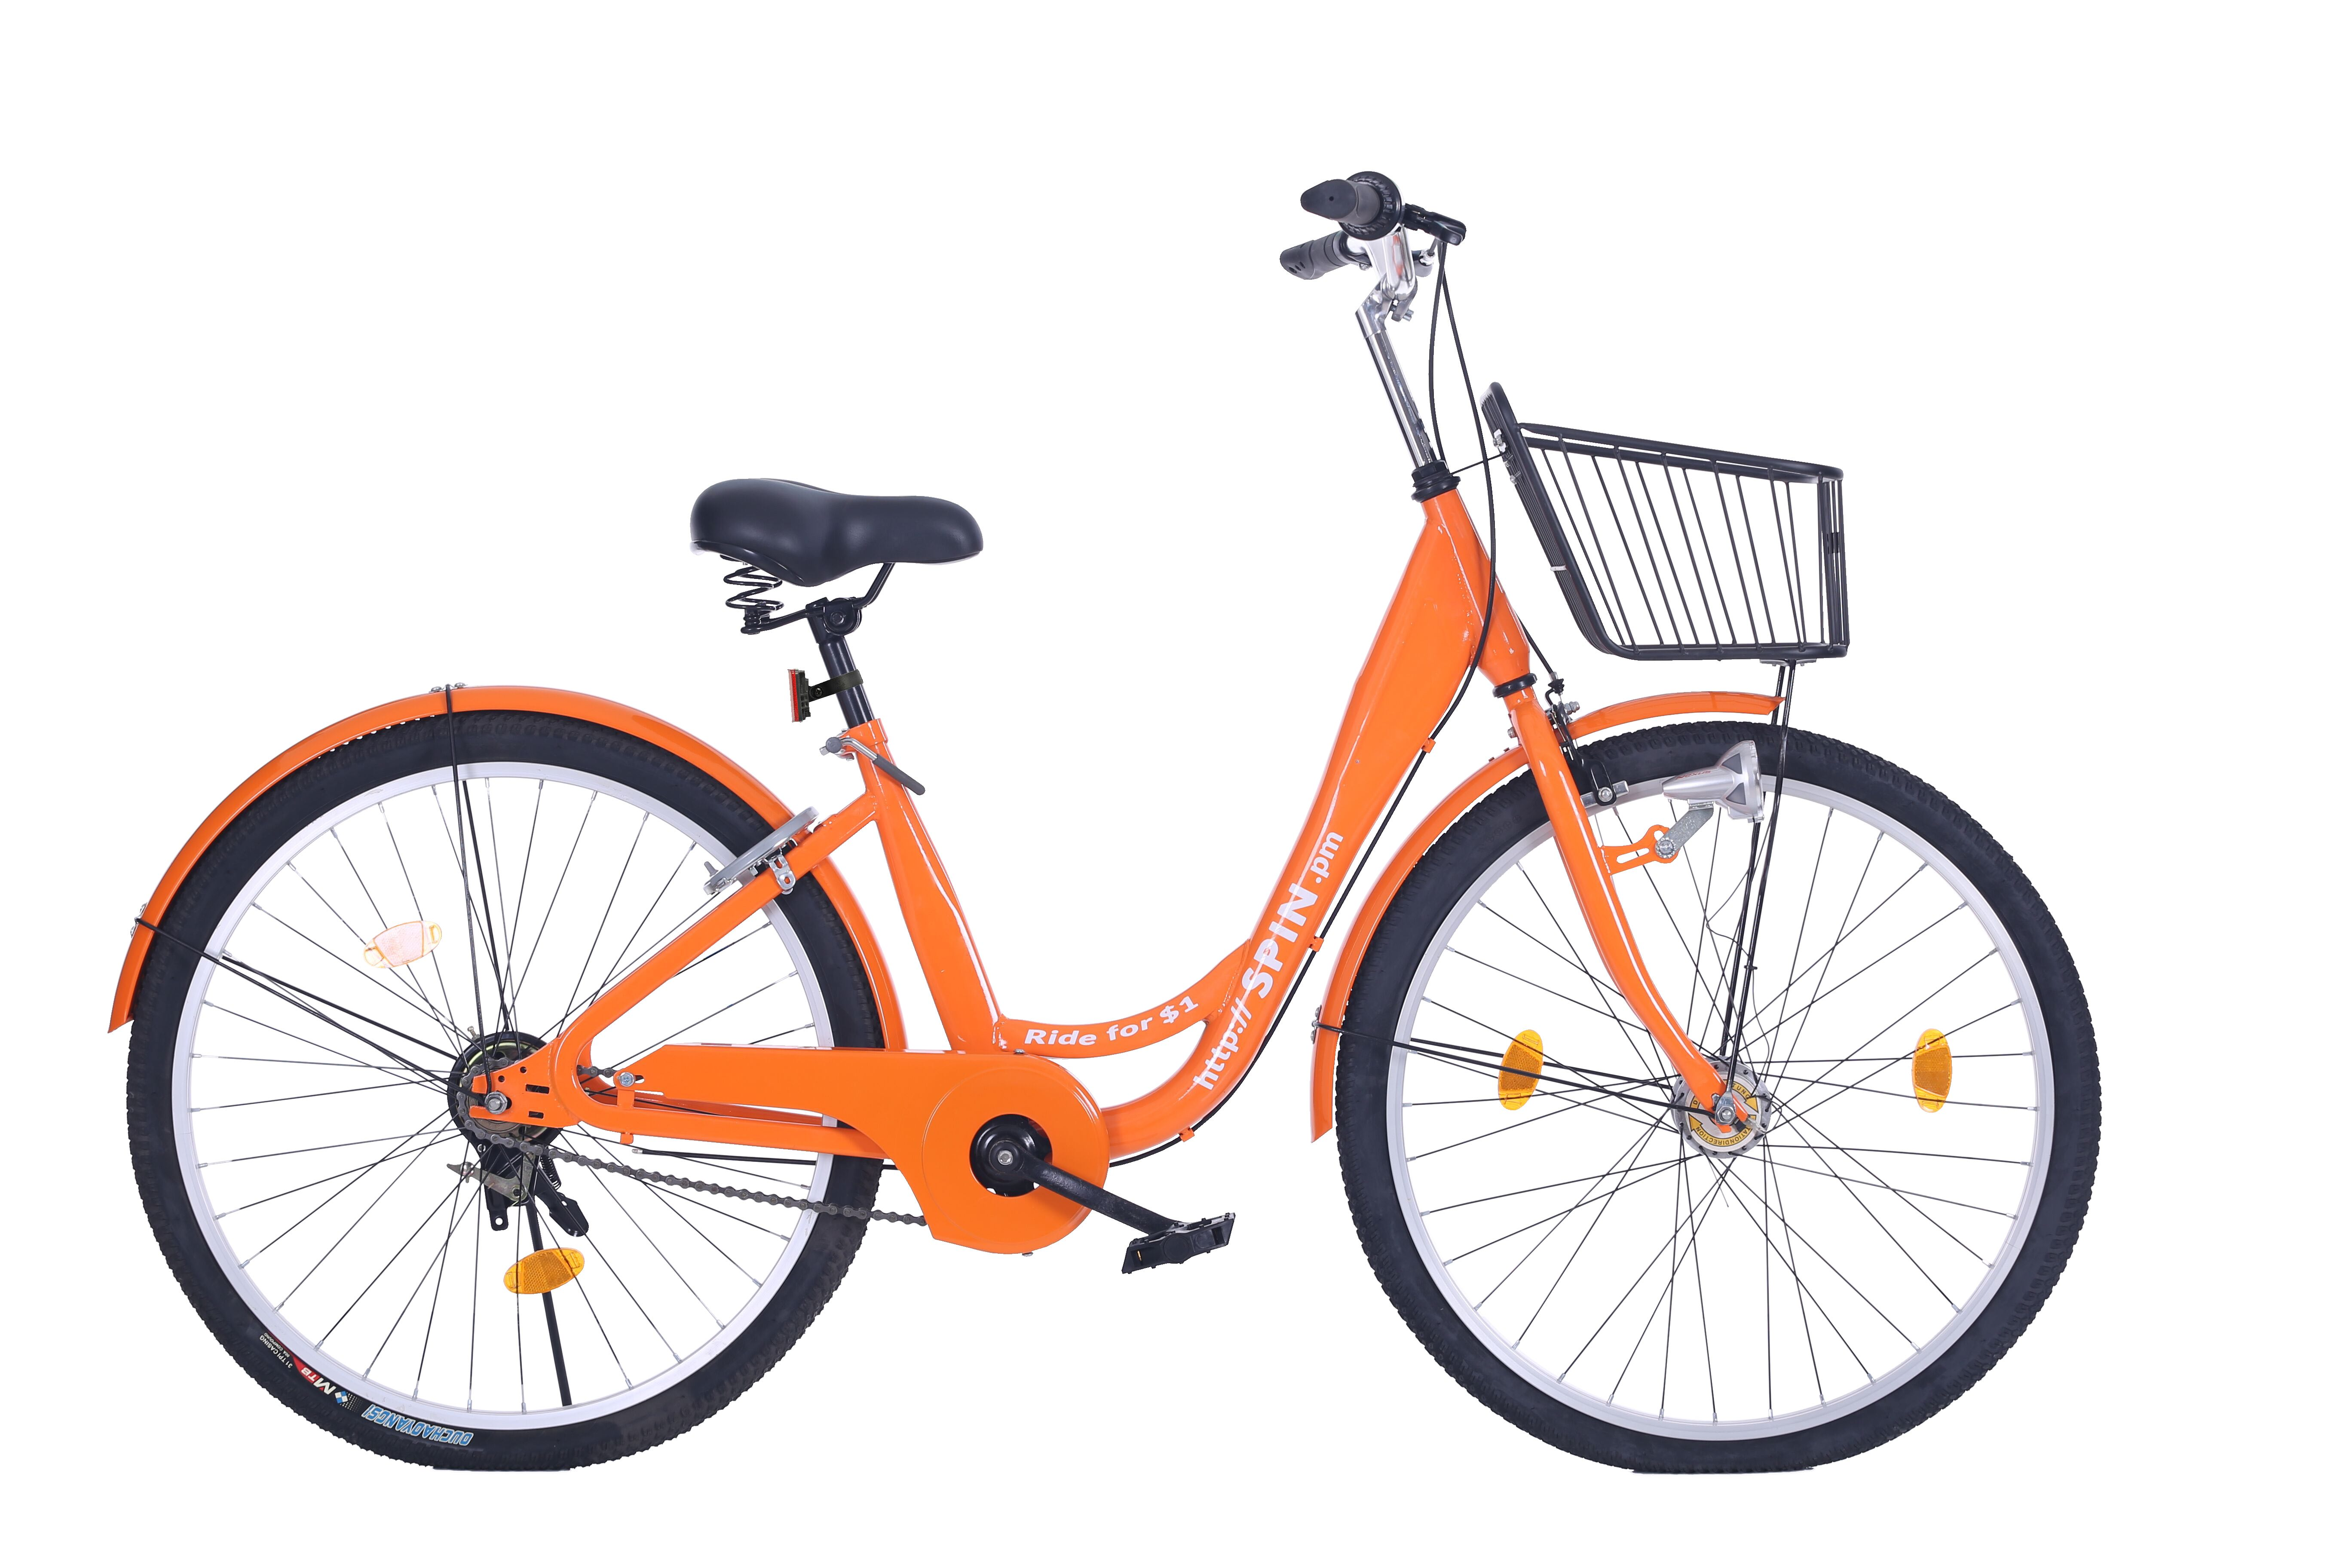 5472x3648 Spin Wants To Bring Dock Less Bike Sharing To The Us Techcrunch